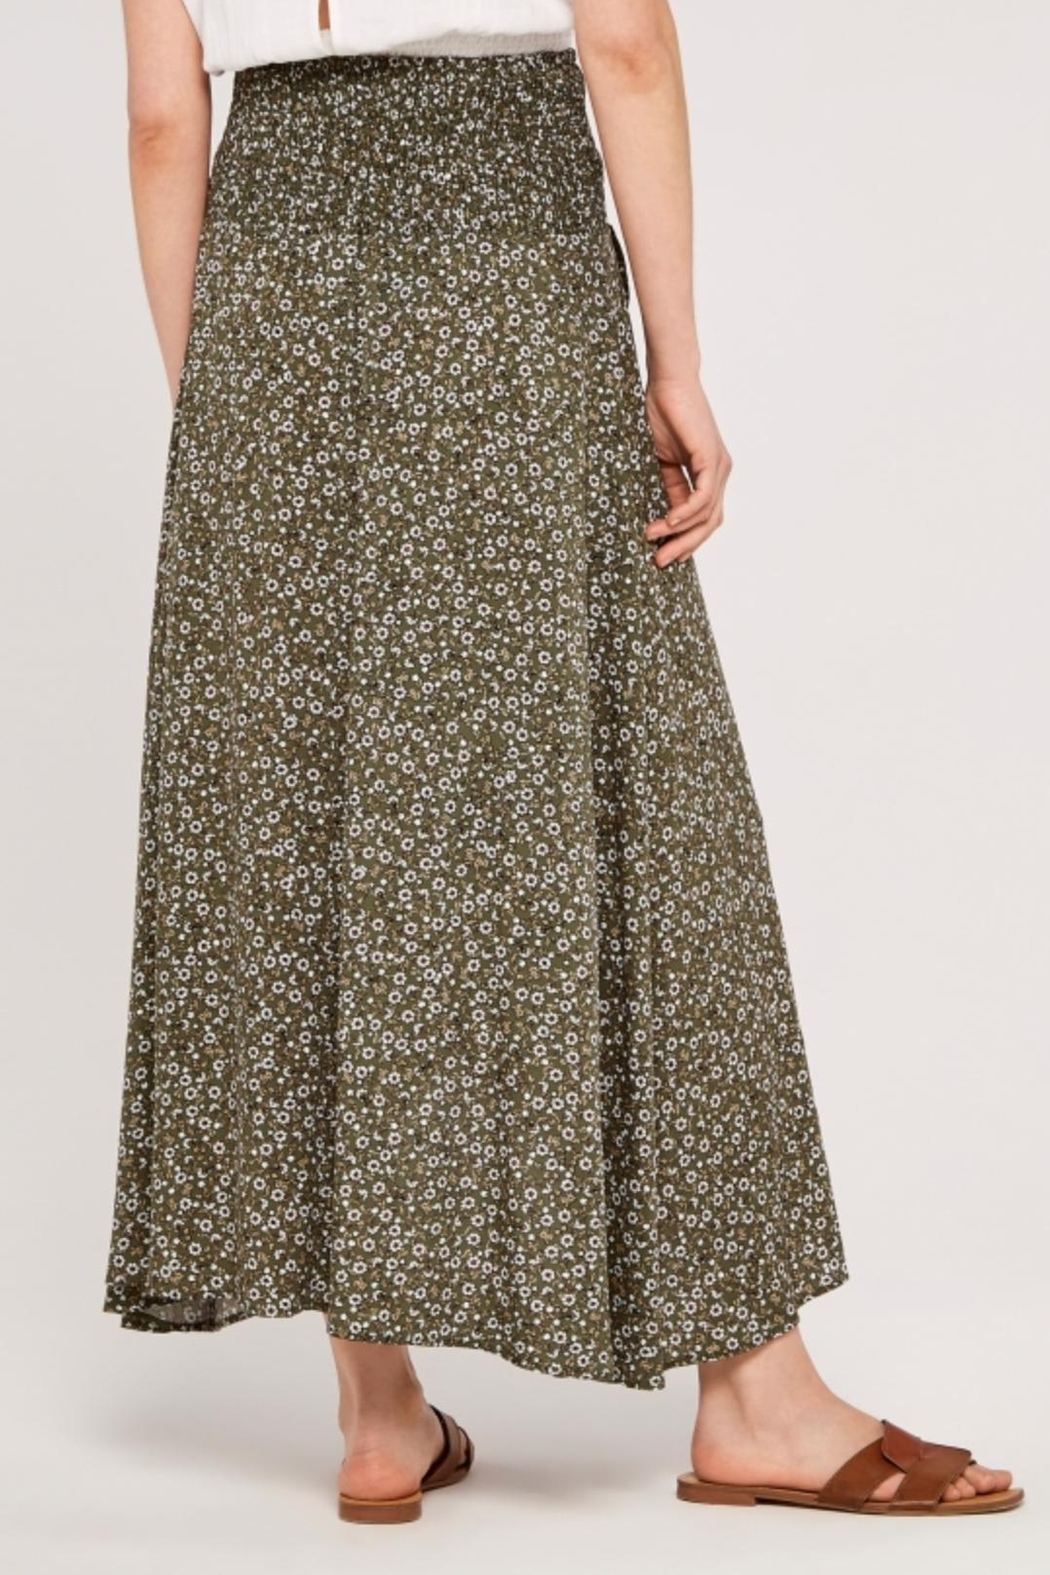 Apricot Ditsy Floral Wrap Skirt - Side Cropped Image